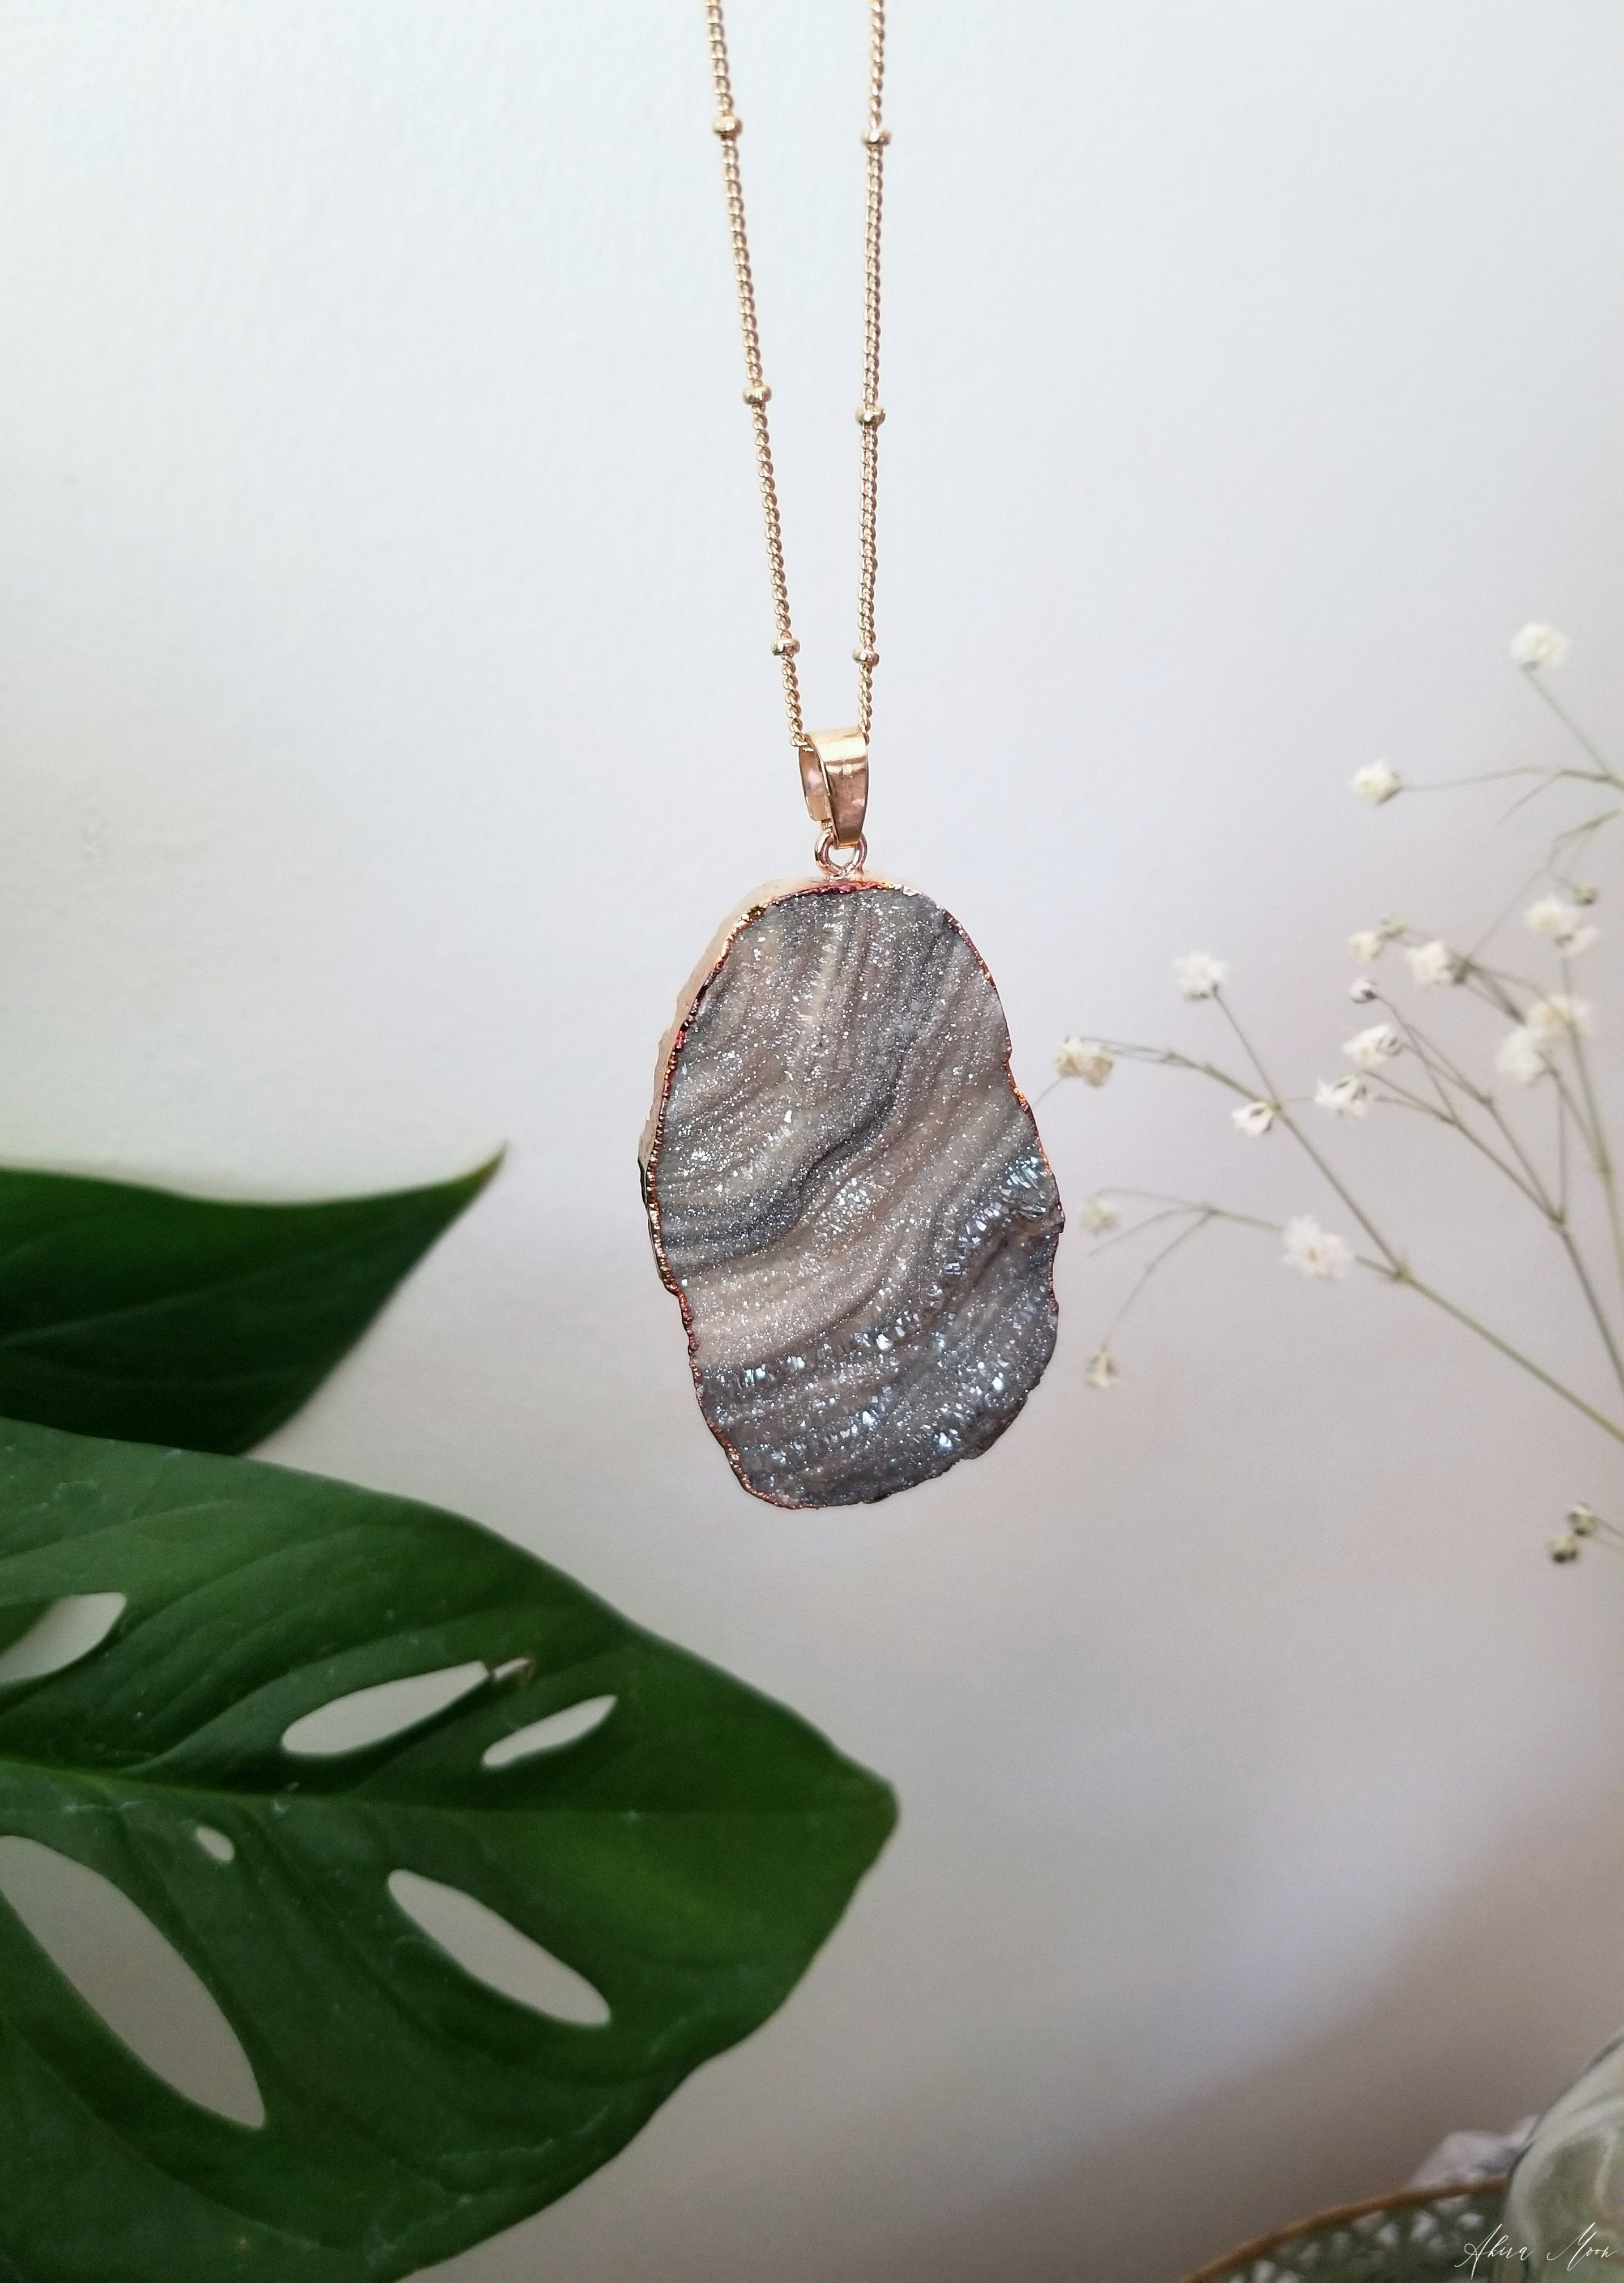 Druzy chalcedony pendant with gold plated satellite style chain